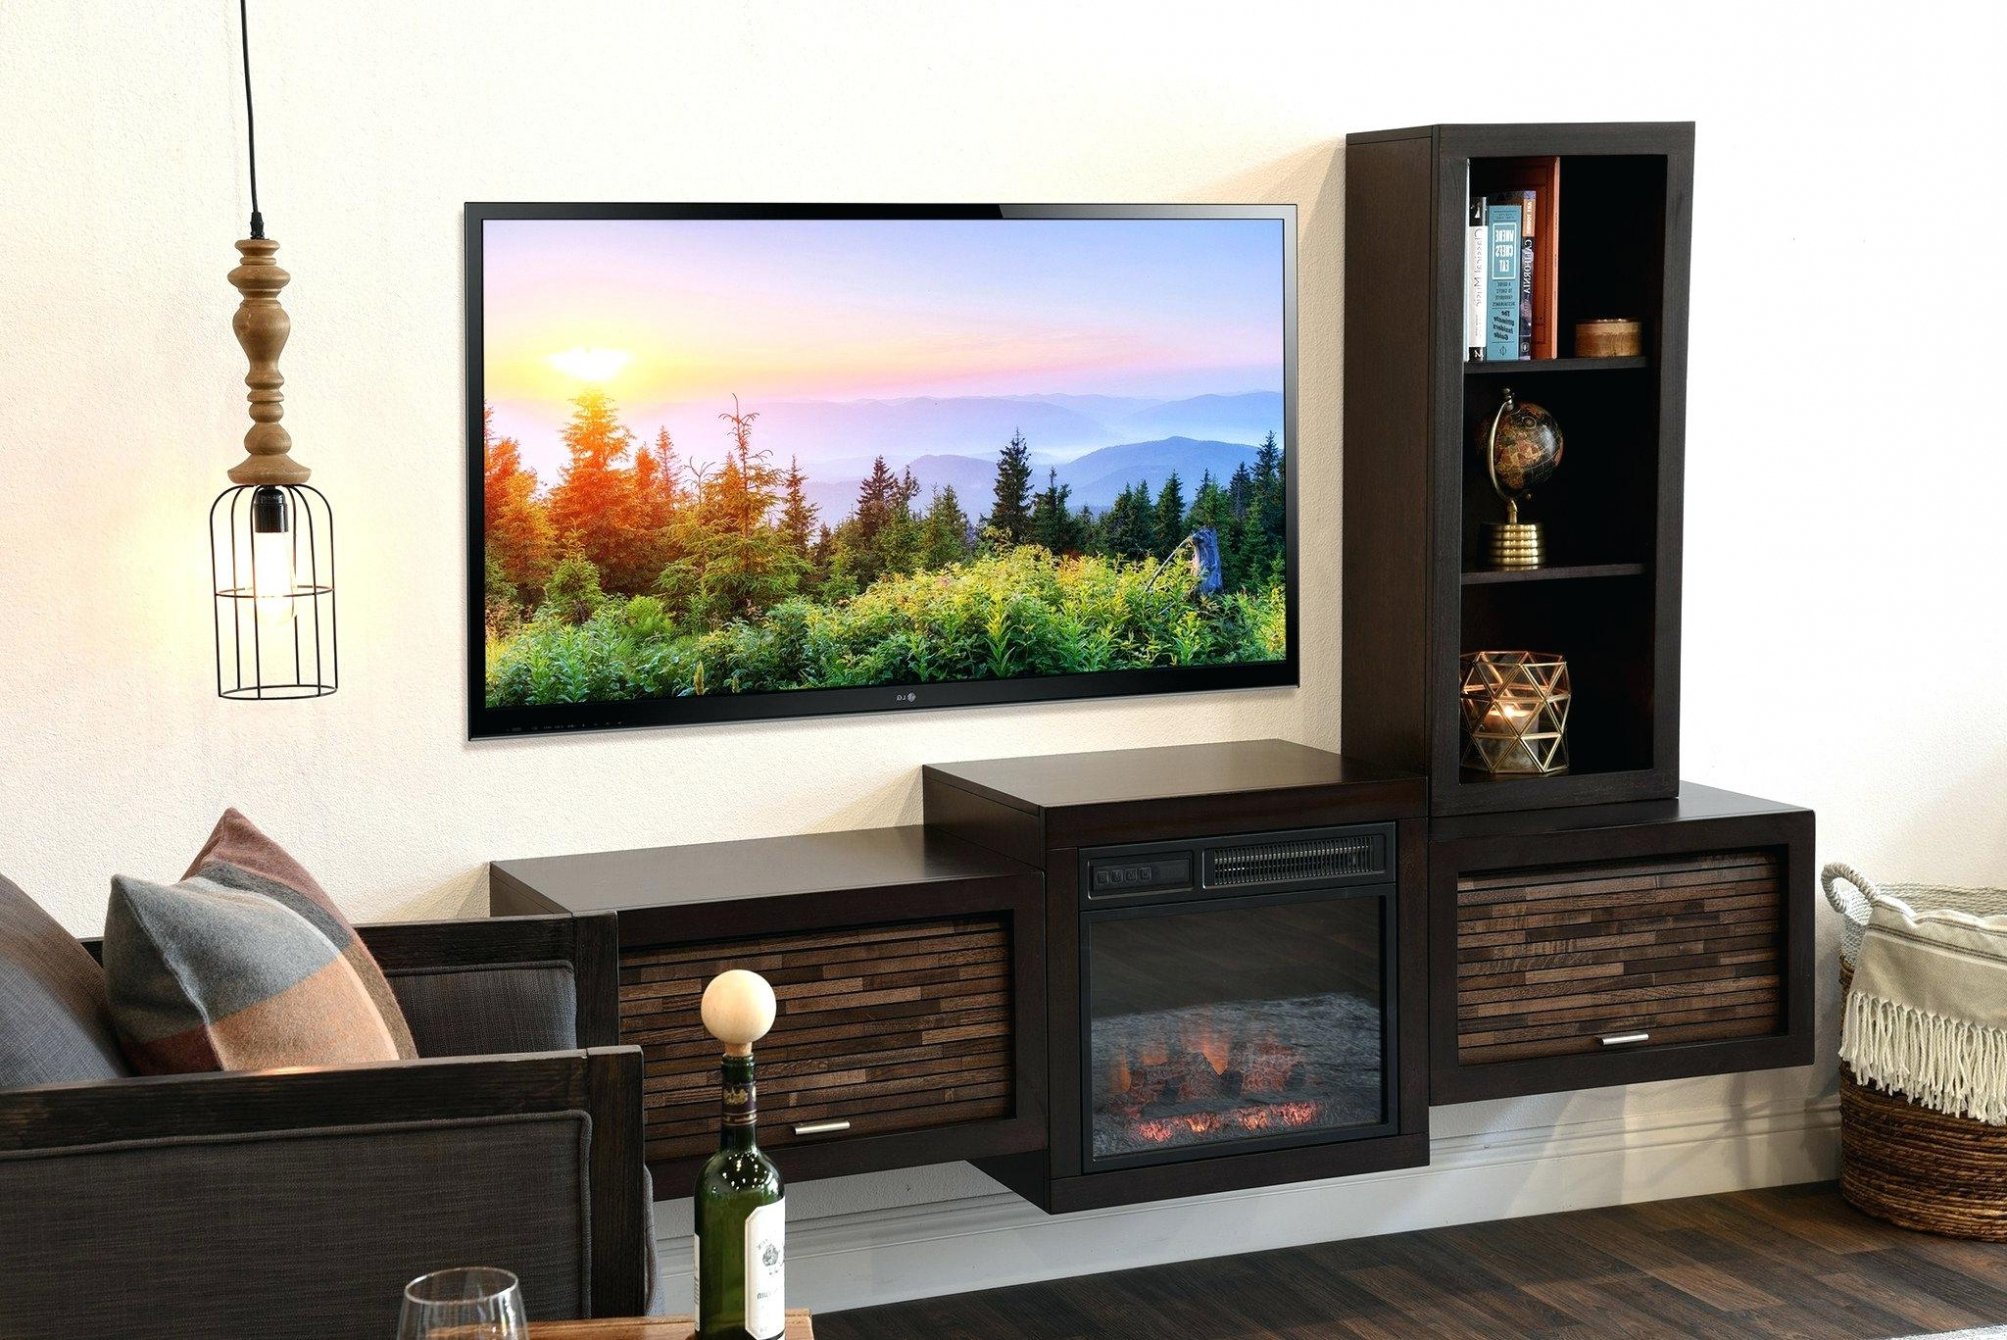 Furniture: Modular Tv Stands Furniture Top Stand With Storage Design Regarding Preferred Modular Tv Stands Furniture (View 5 of 20)